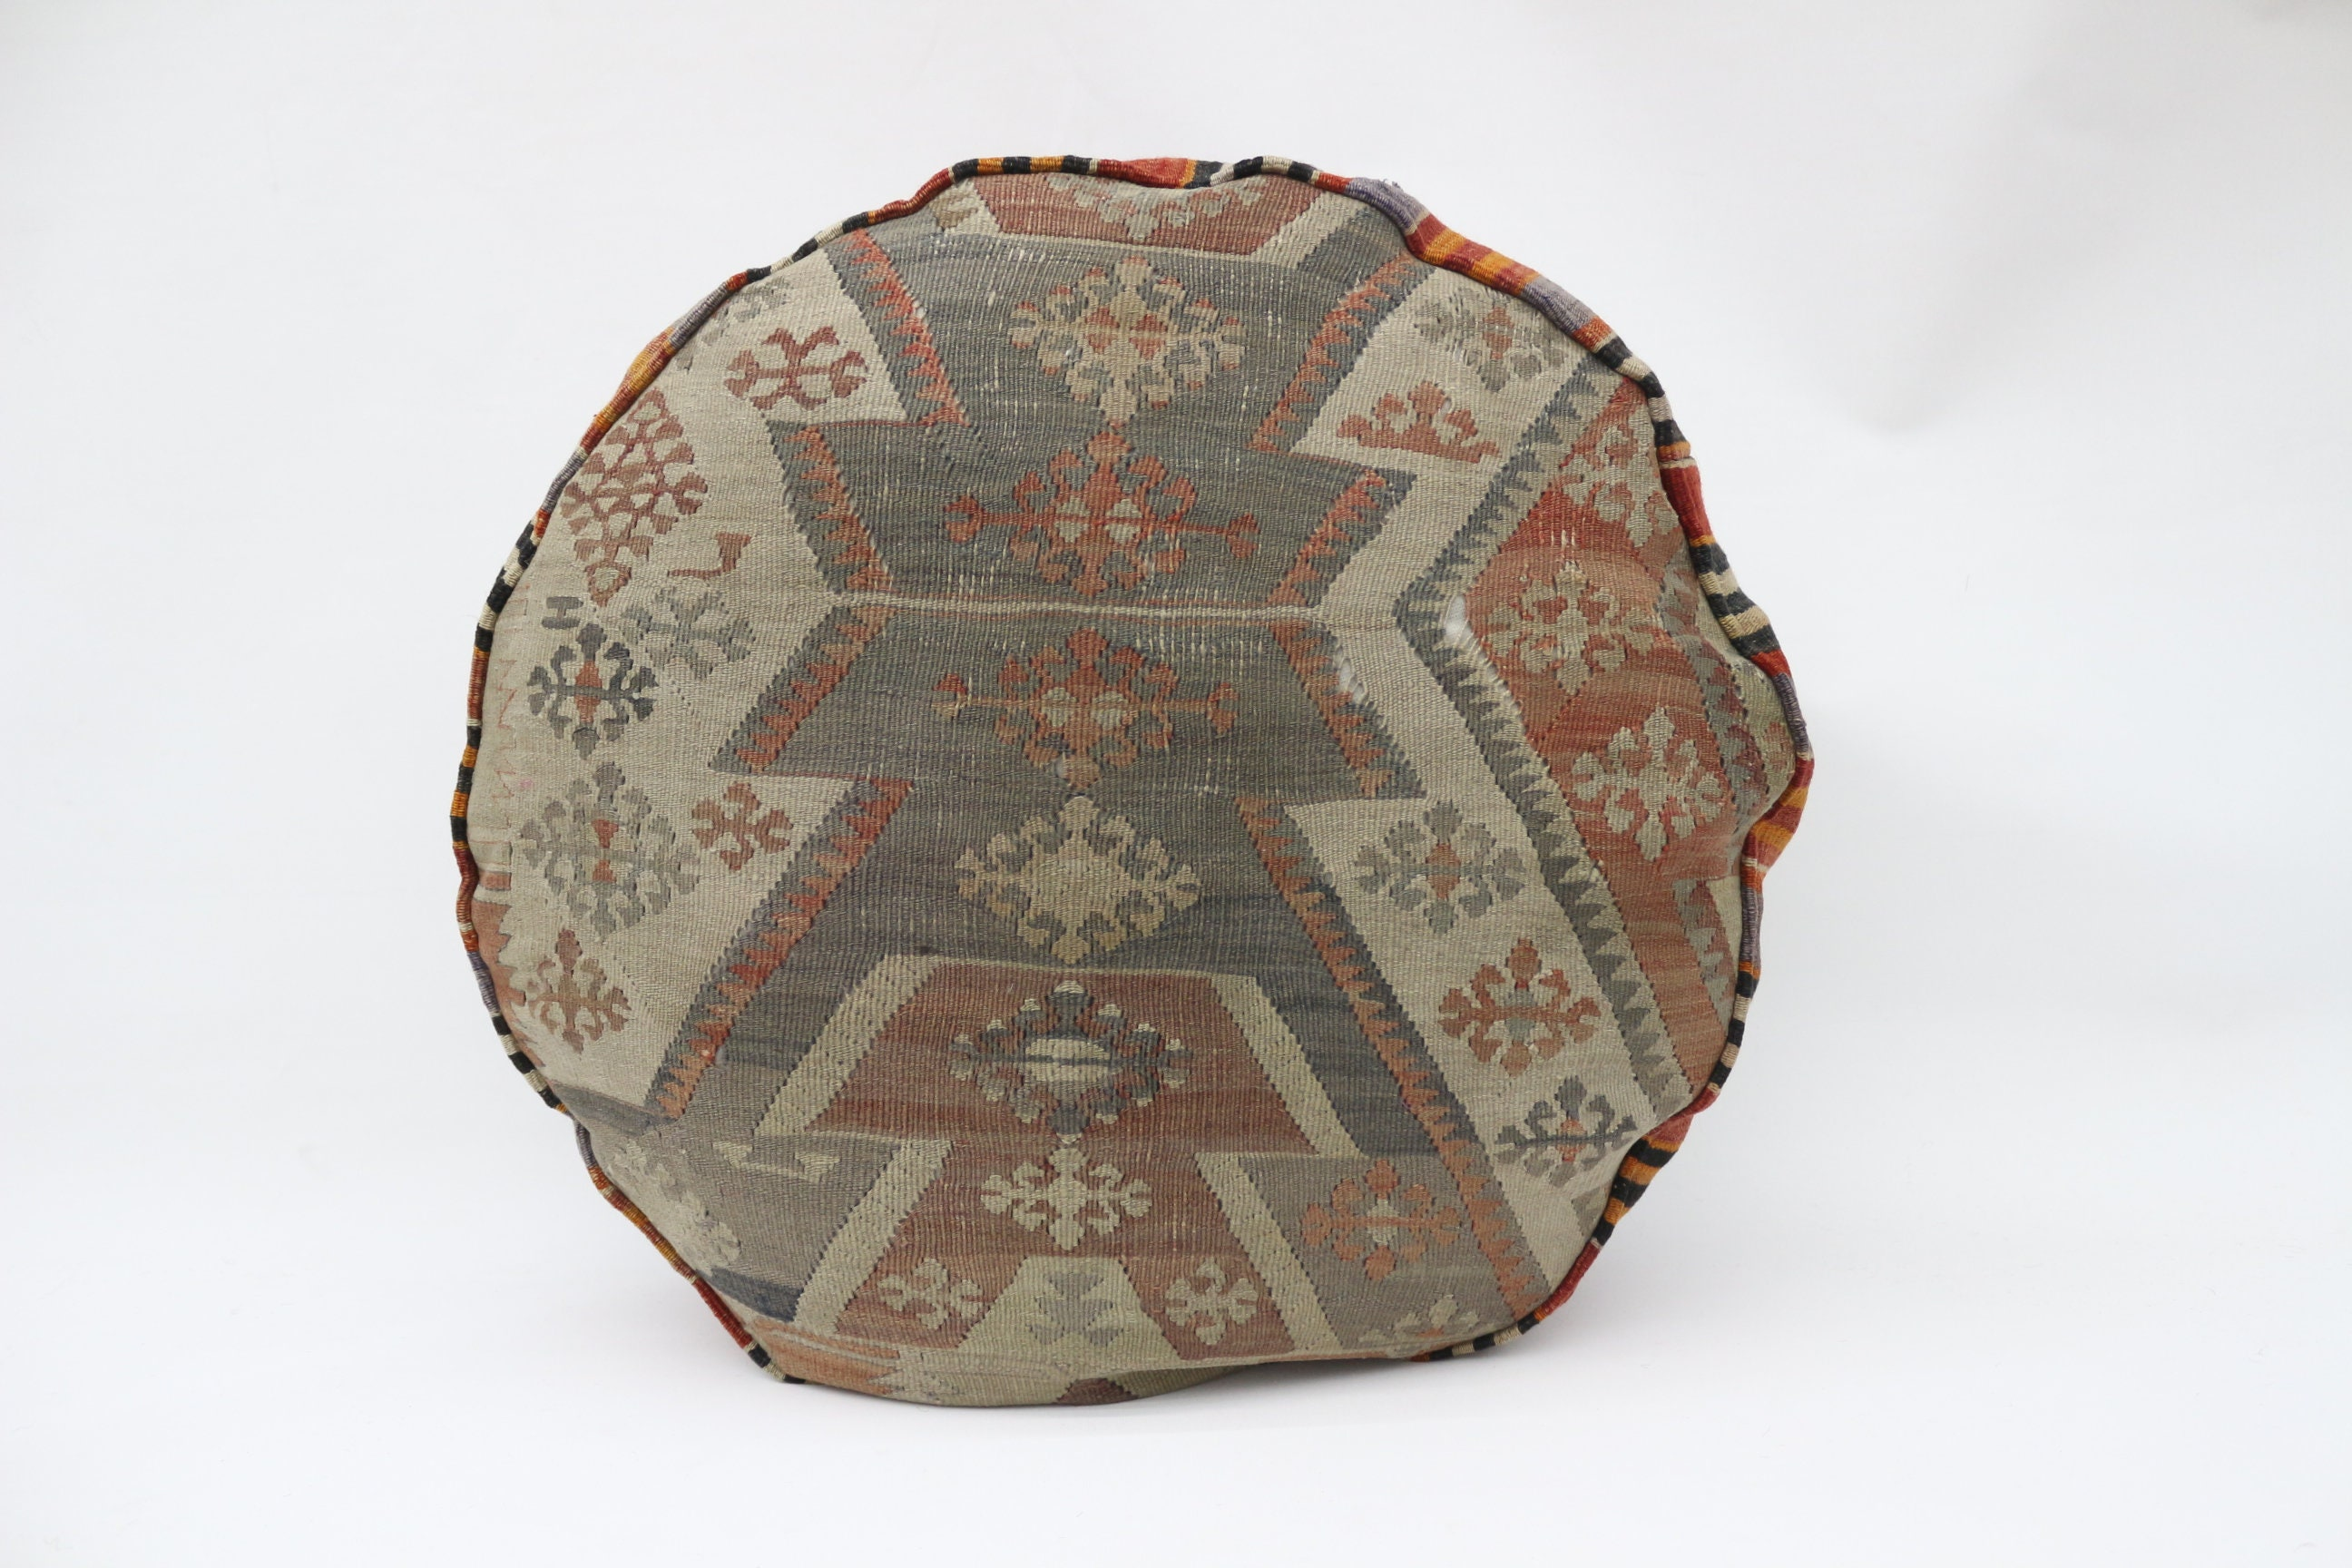 Geometric Kilim Pouf,Camping Puff,24x24x6 Pear Seat,Orange Pouf,Circle Pouf,Floor Pillow Cover,Garden Pouf Pillow,Round Puffs SP606015 17